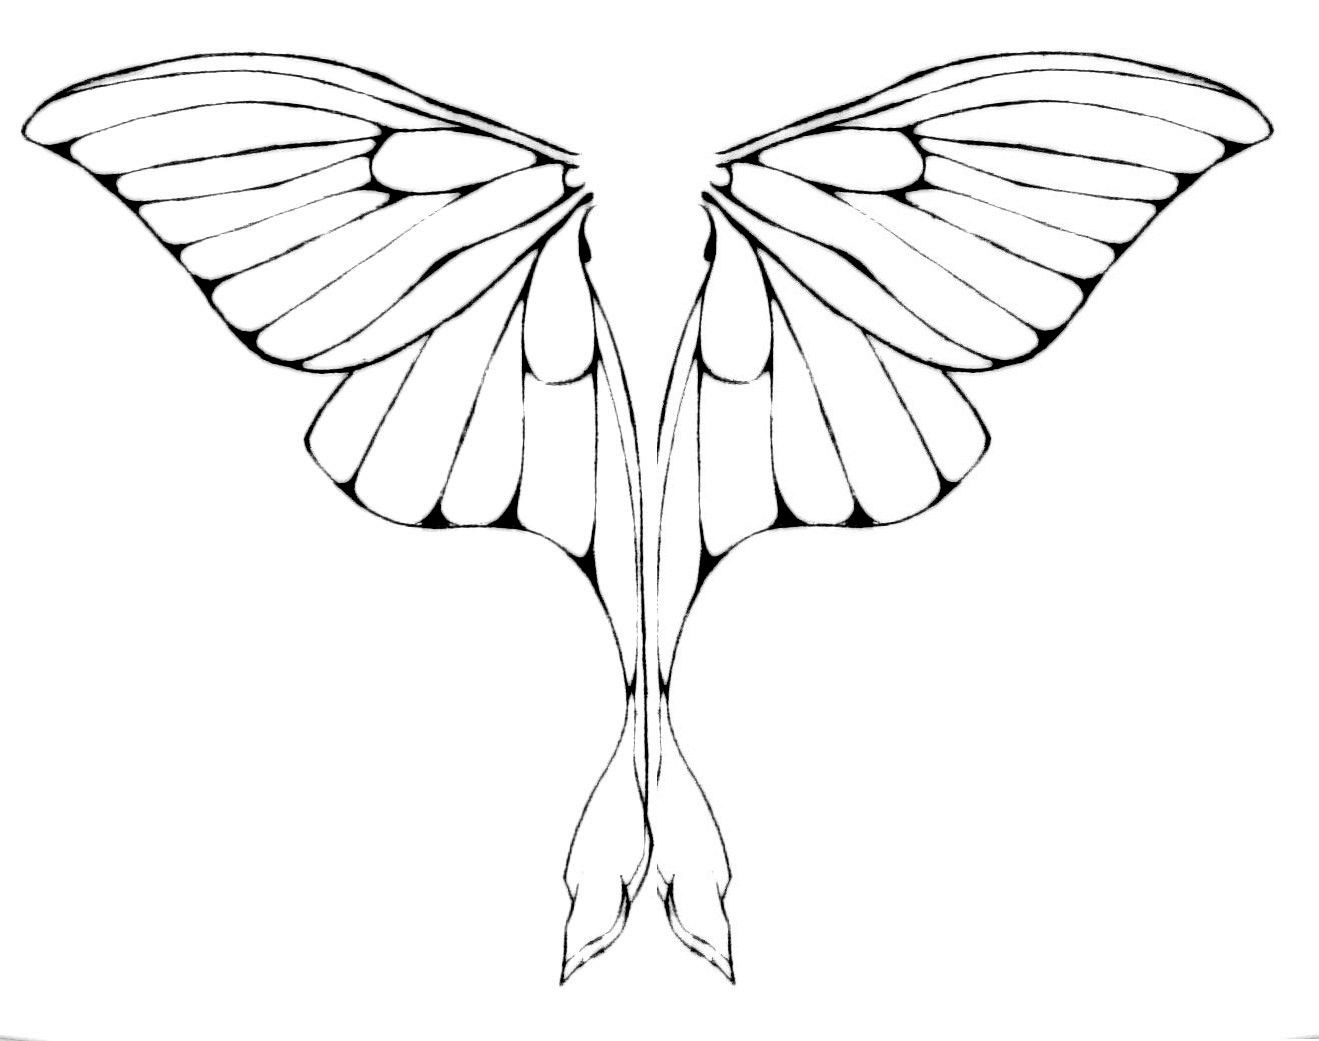 Moth Line Drawing at GetDrawings.com | Free for personal use Moth ...